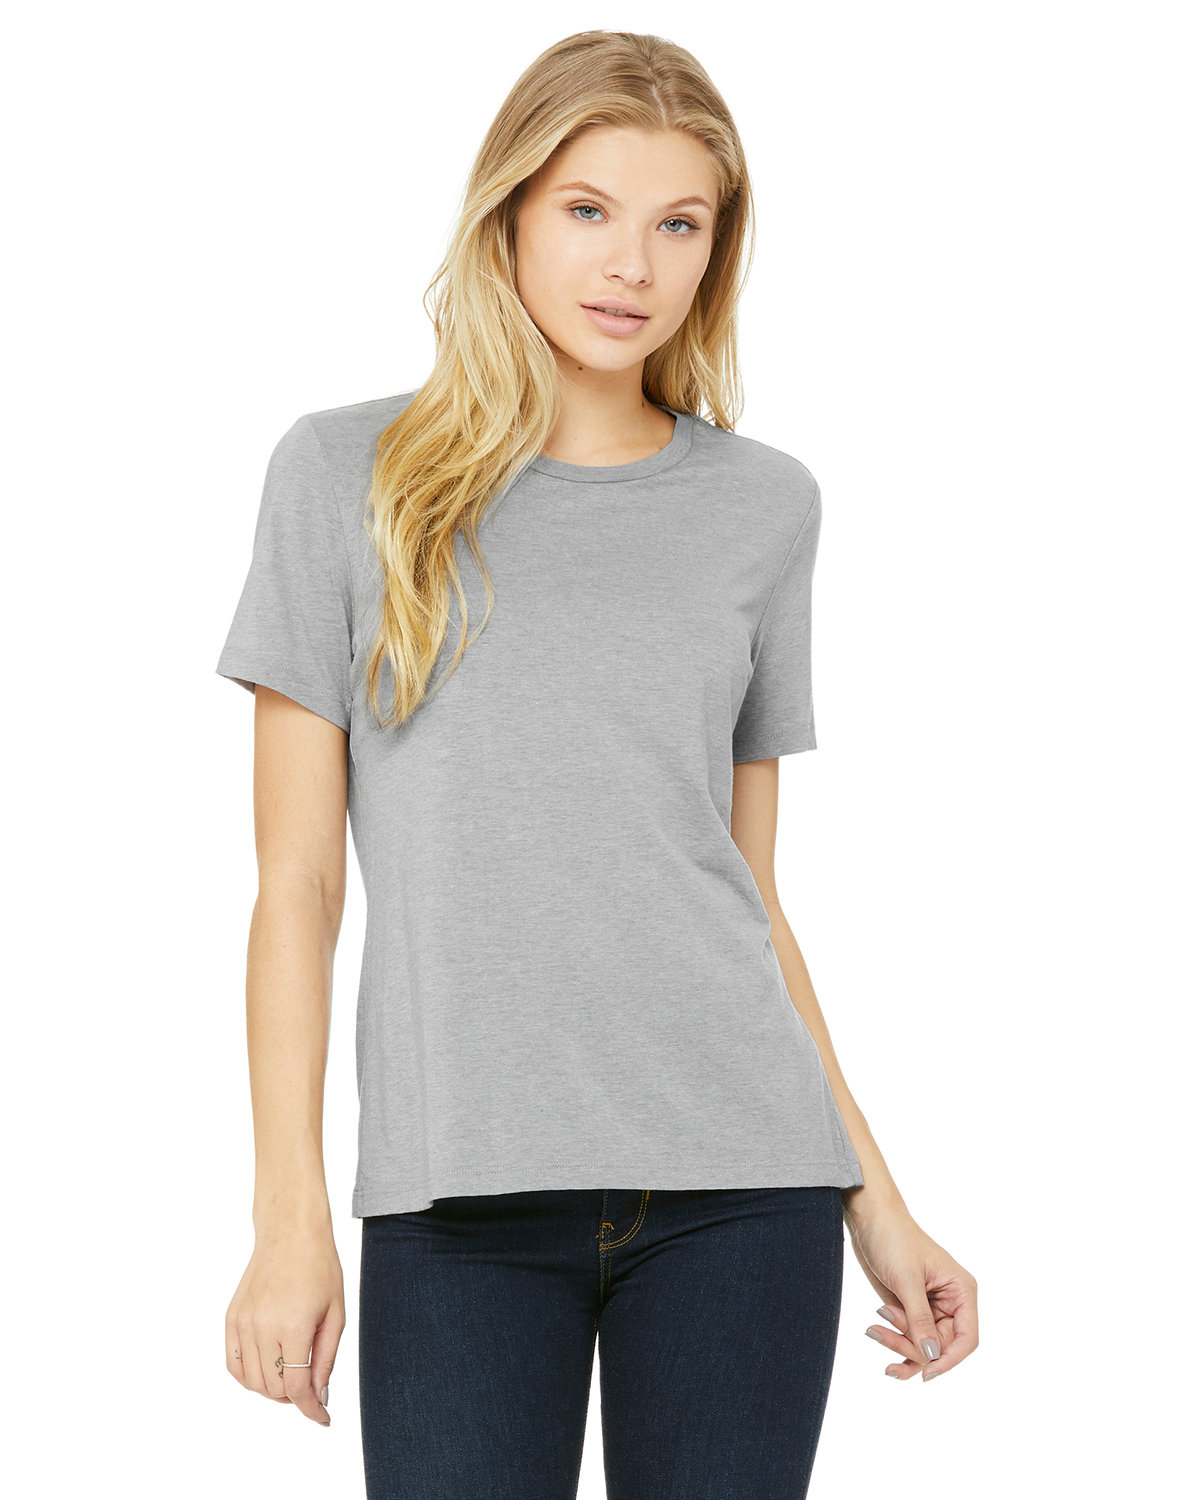 Bella + Canvas Ladies' Relaxed Triblend T-Shirt ATH GREY TRBLND